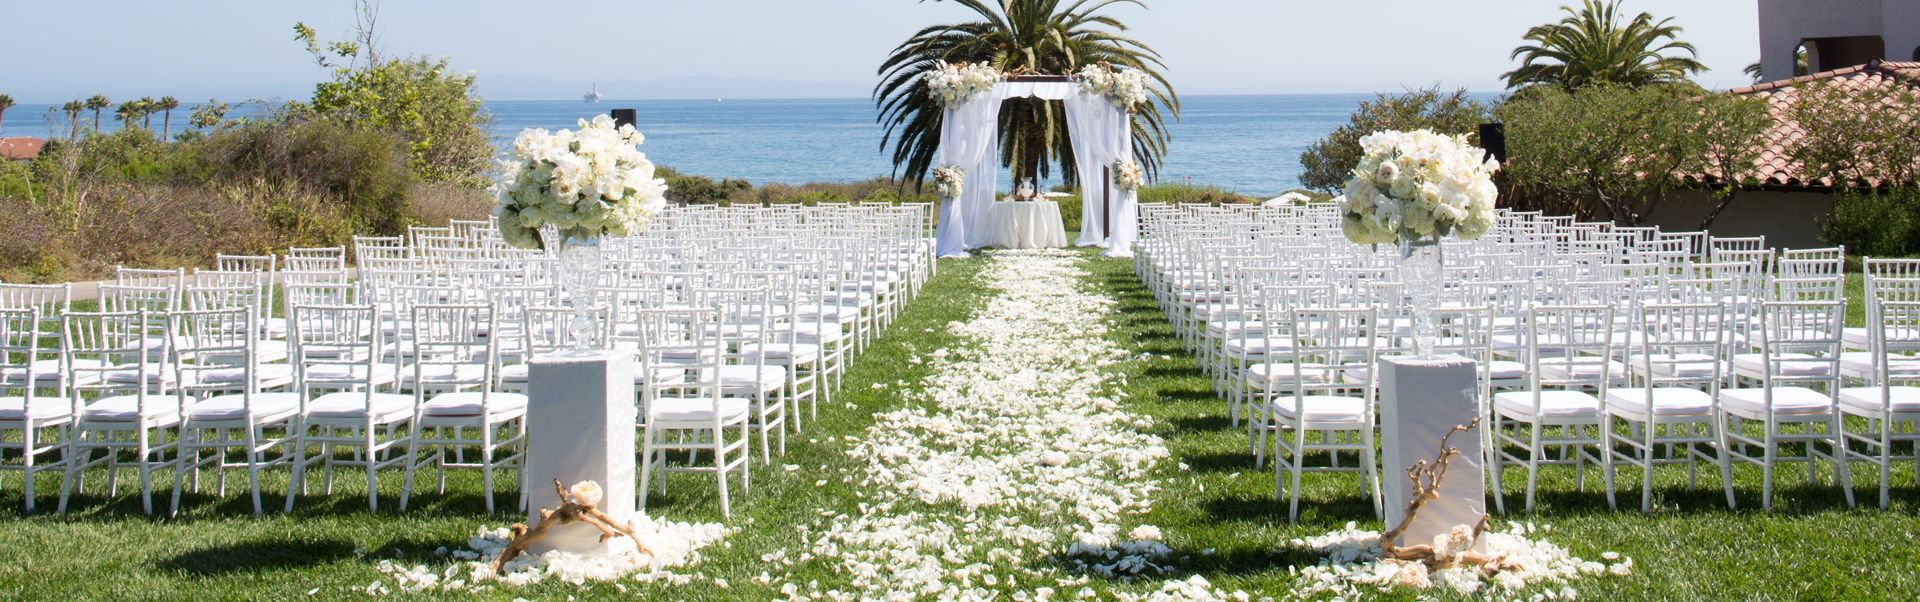 Gorgeous Santa Barbara Weddings Beachfront Venues By Bacara Resort Weddingssantabarbara Sbofficiant